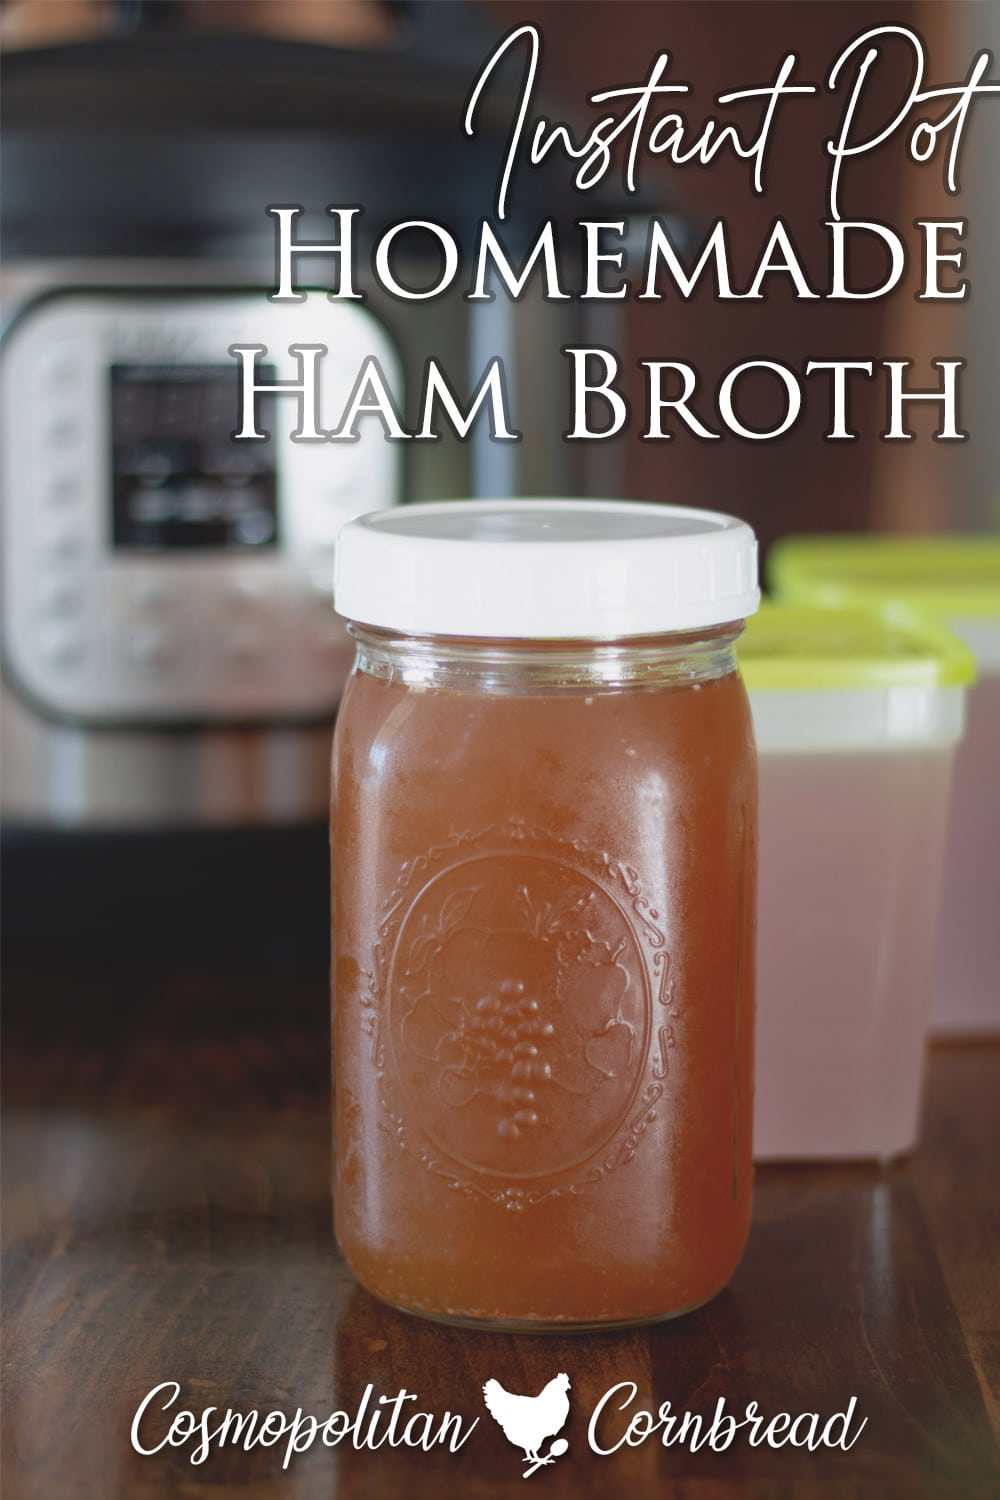 Use your leftover ham bone to create a healthy bone broth (stock) to use for many more recipes.